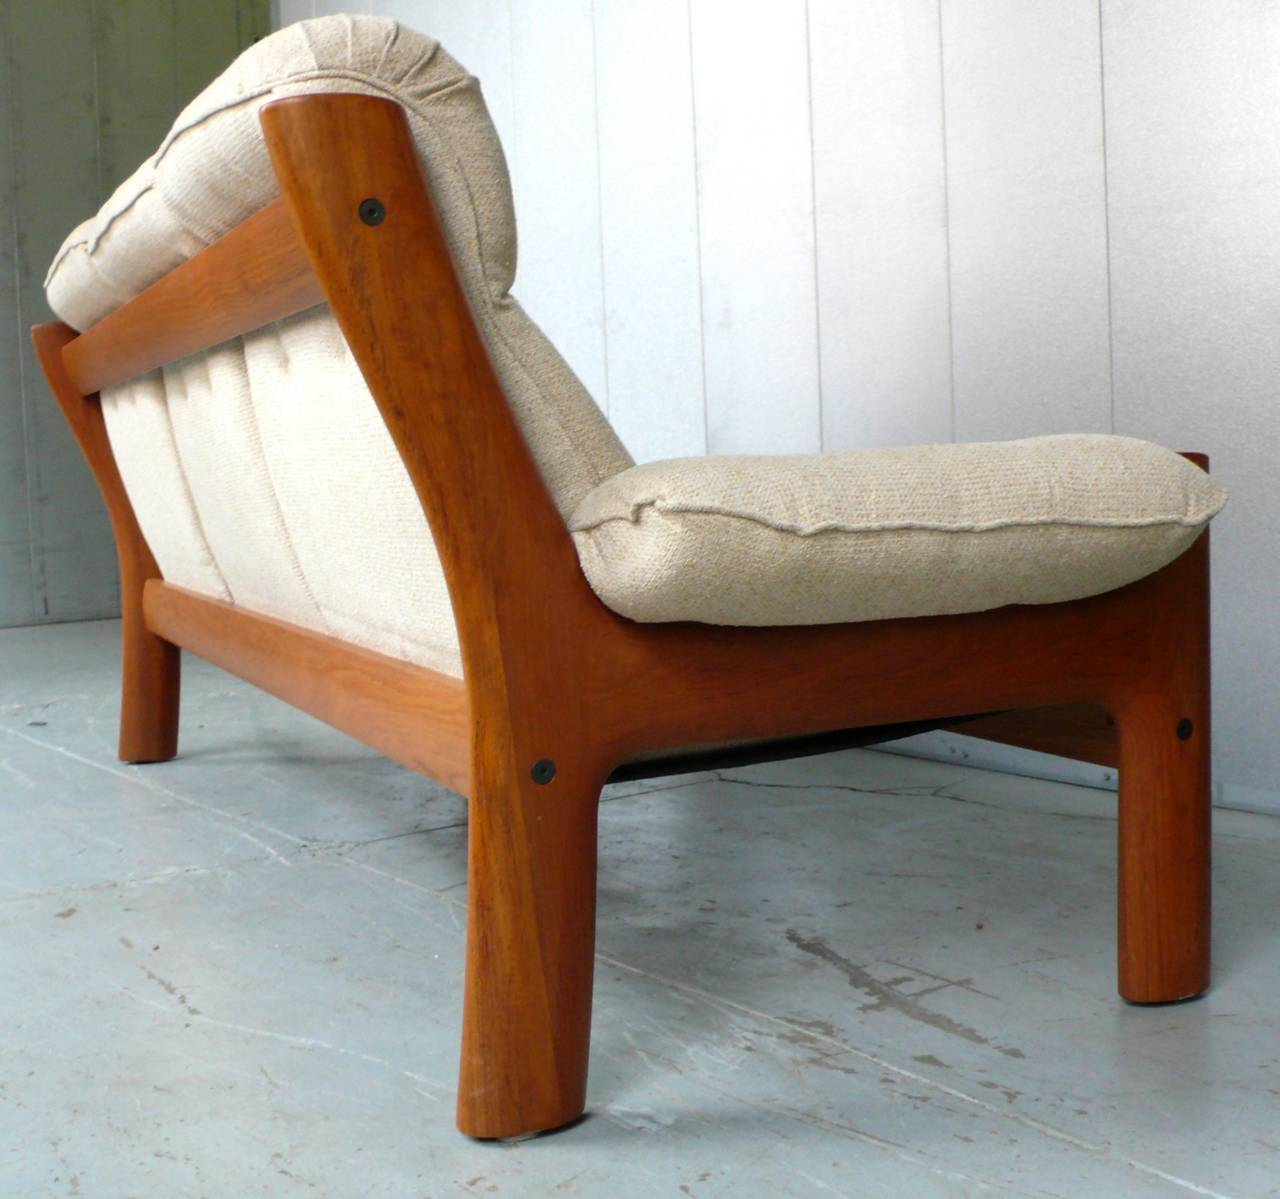 Norwegian Teak Sofa by Ekornes In Excellent Condition For Sale In New York, NY